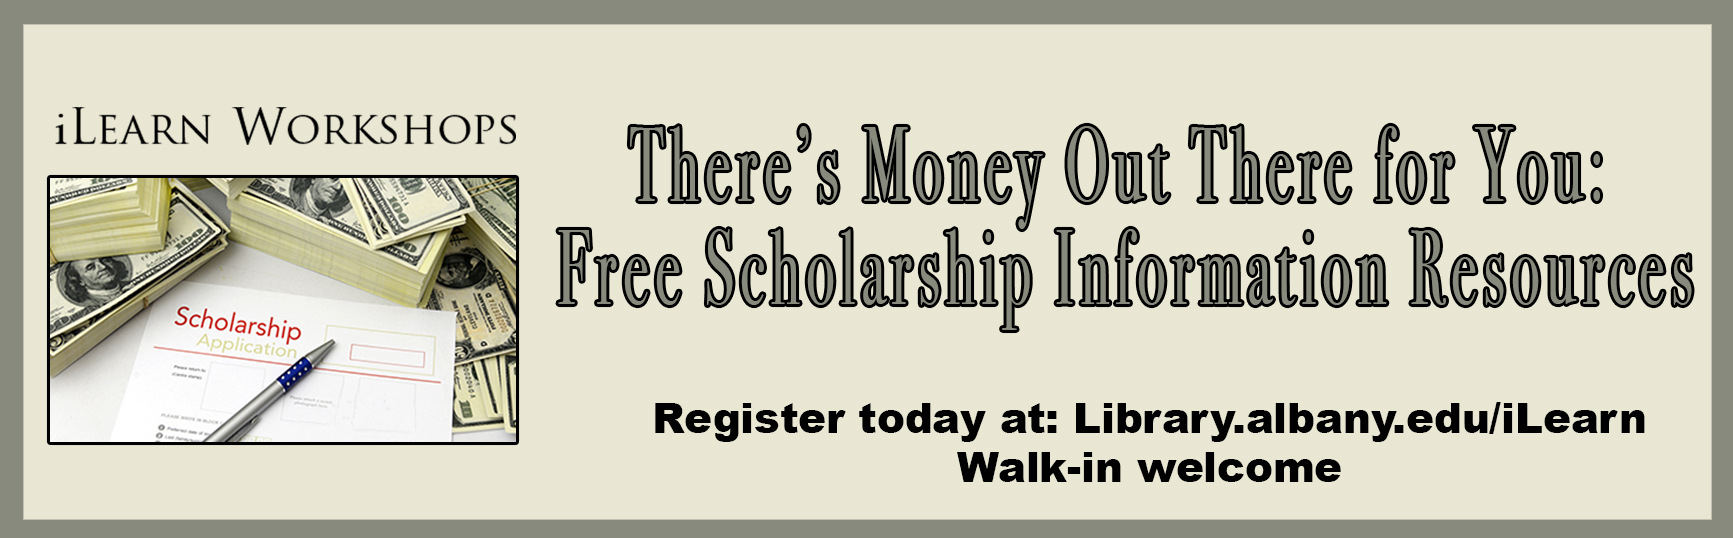 There's Money Out There for You: Free Scholarship Information Resources